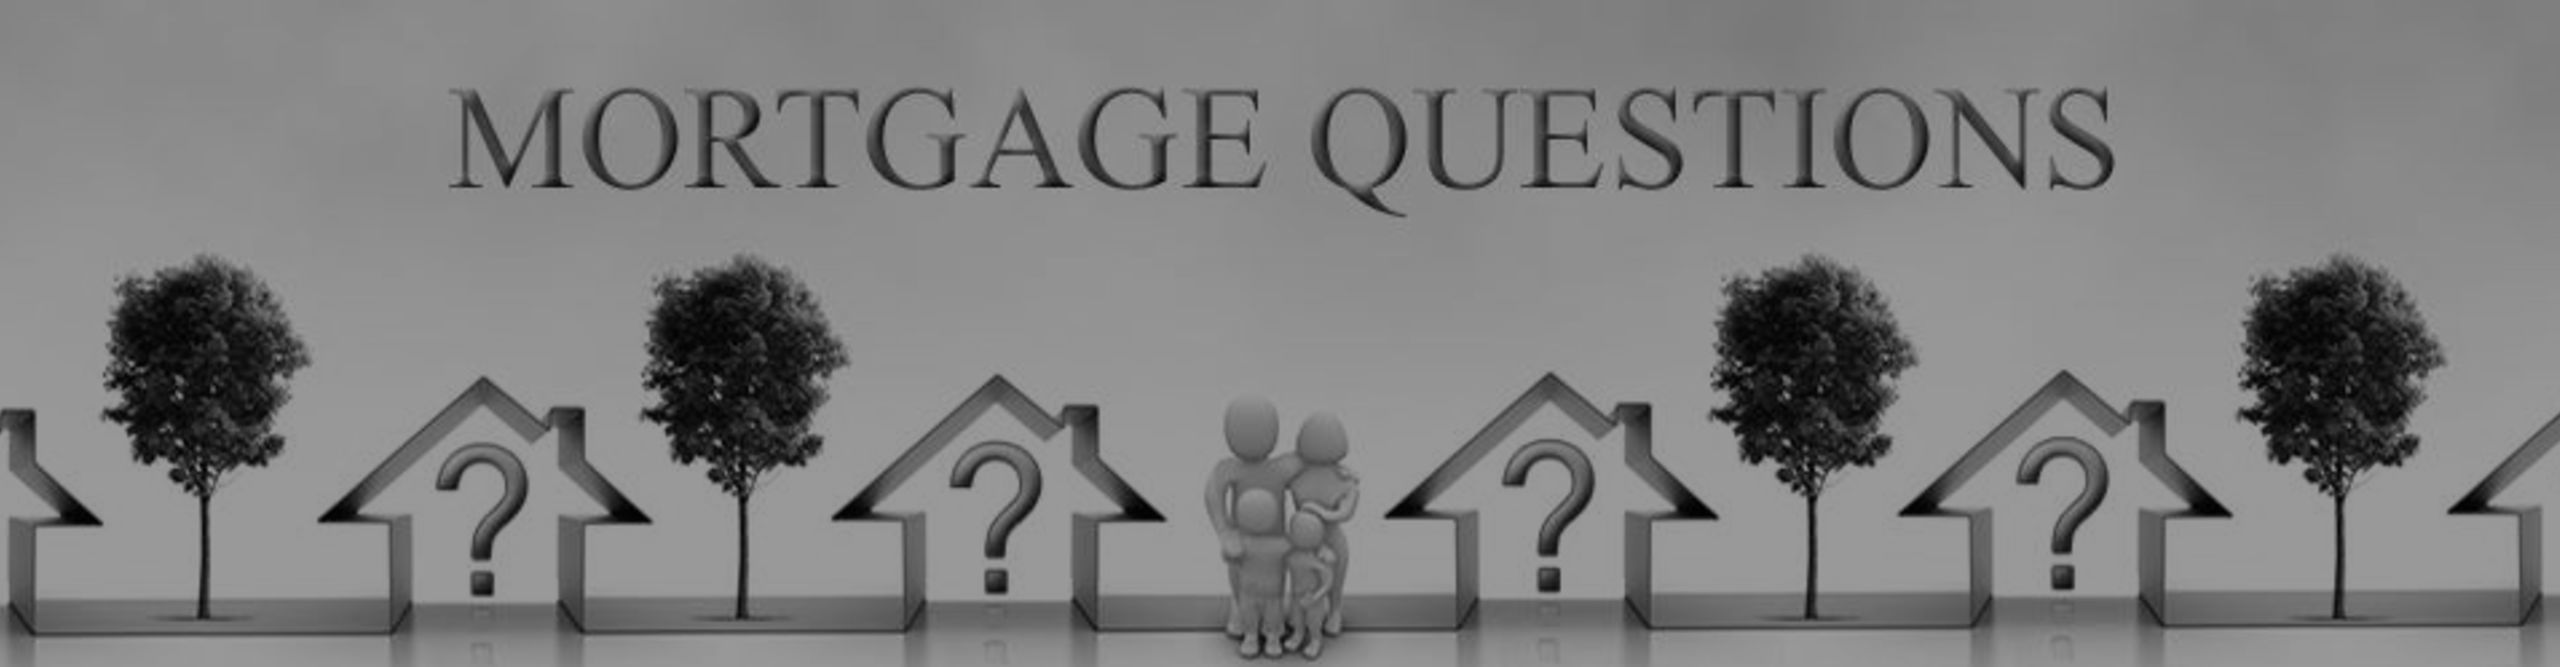 Have Questions About The Different Finance Options When Buying A Home?